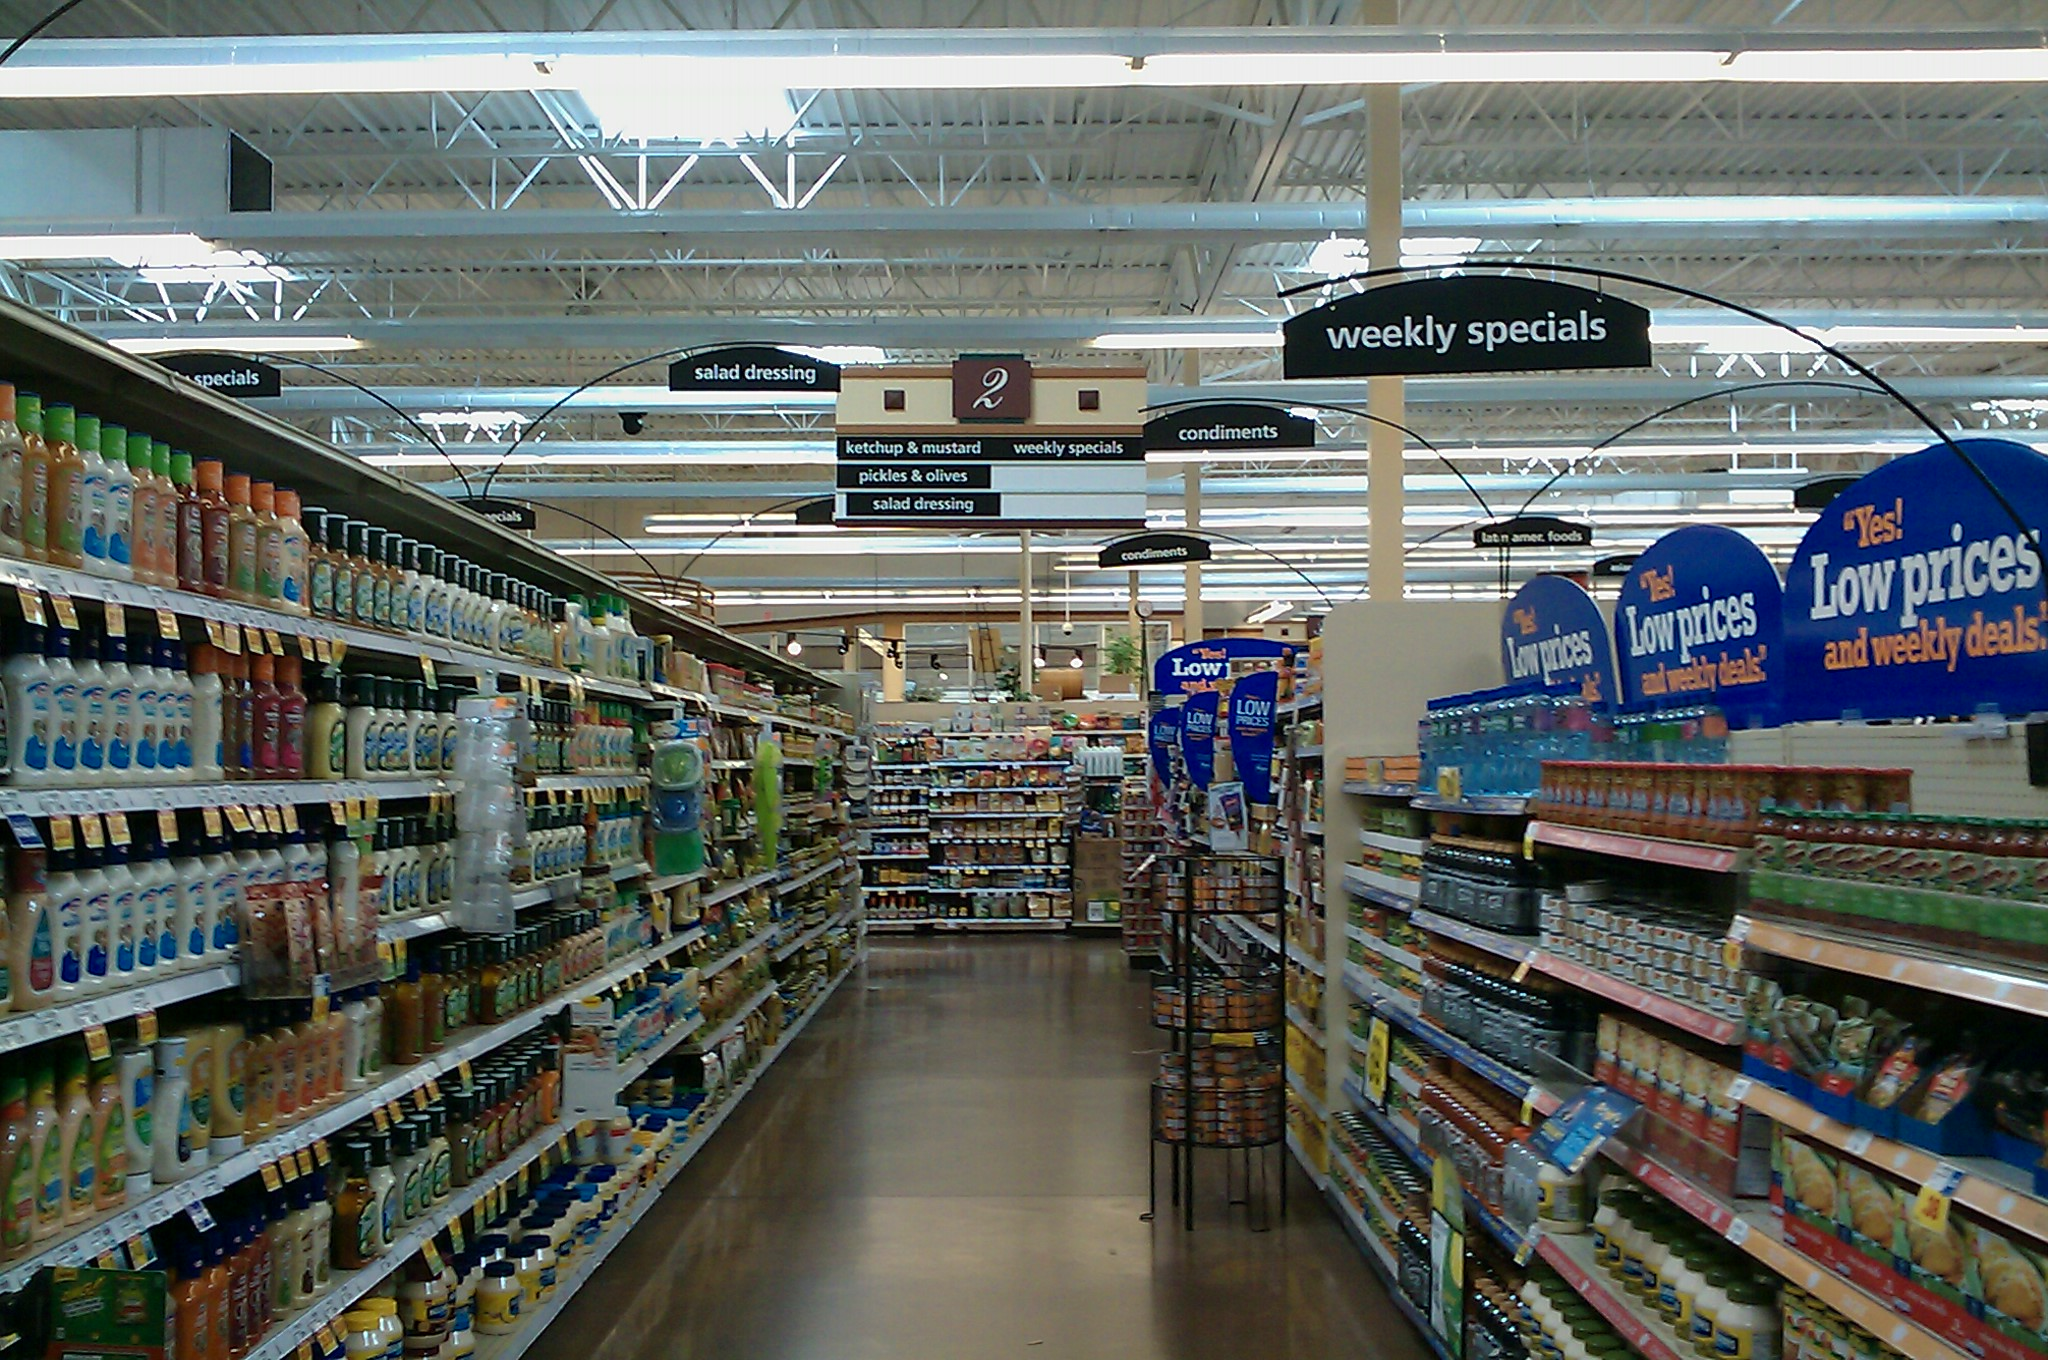 Atoka (TN) United States  city photo : food retail tn tennessee 2006 supermarket produce grocerystore grocery ...